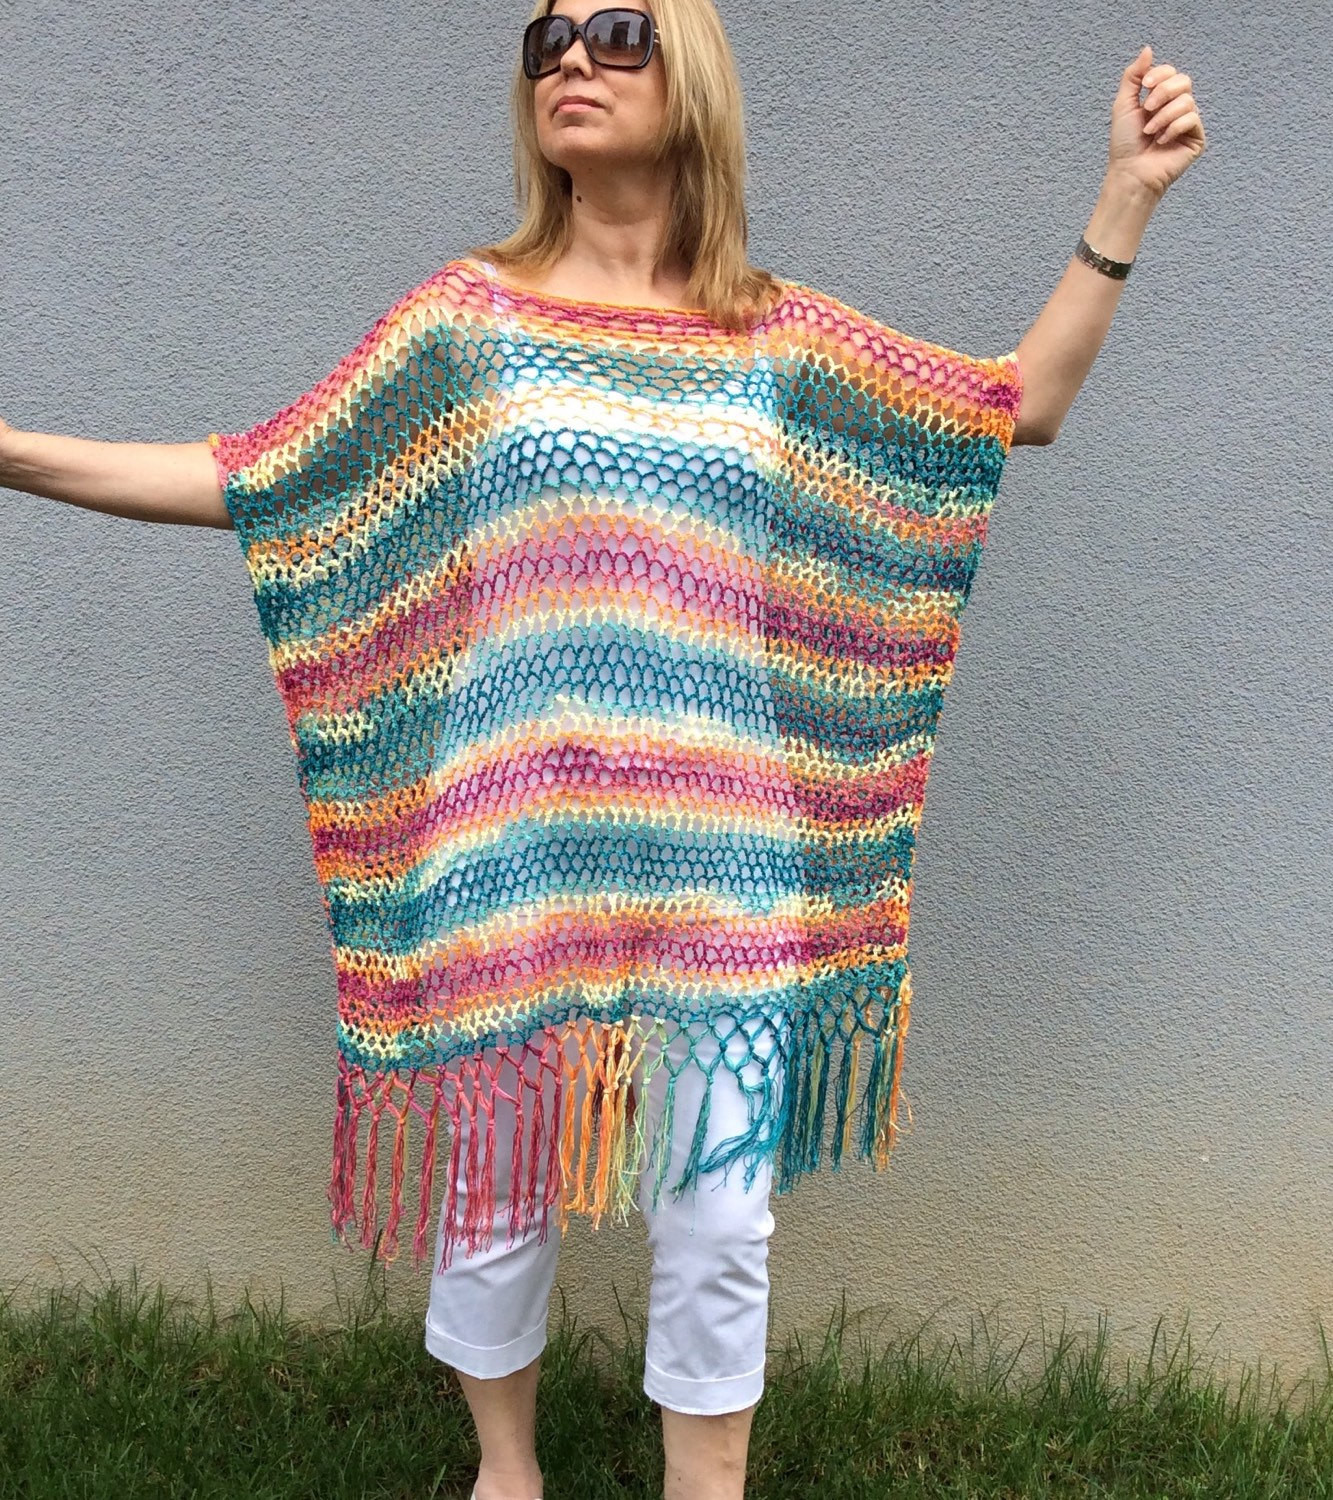 Crochet Swim Cover Up Awesome Crochet Swimsuit Cover Up Colorful Beach Wear Summer Dress Of Lovely 46 Pictures Crochet Swim Cover Up